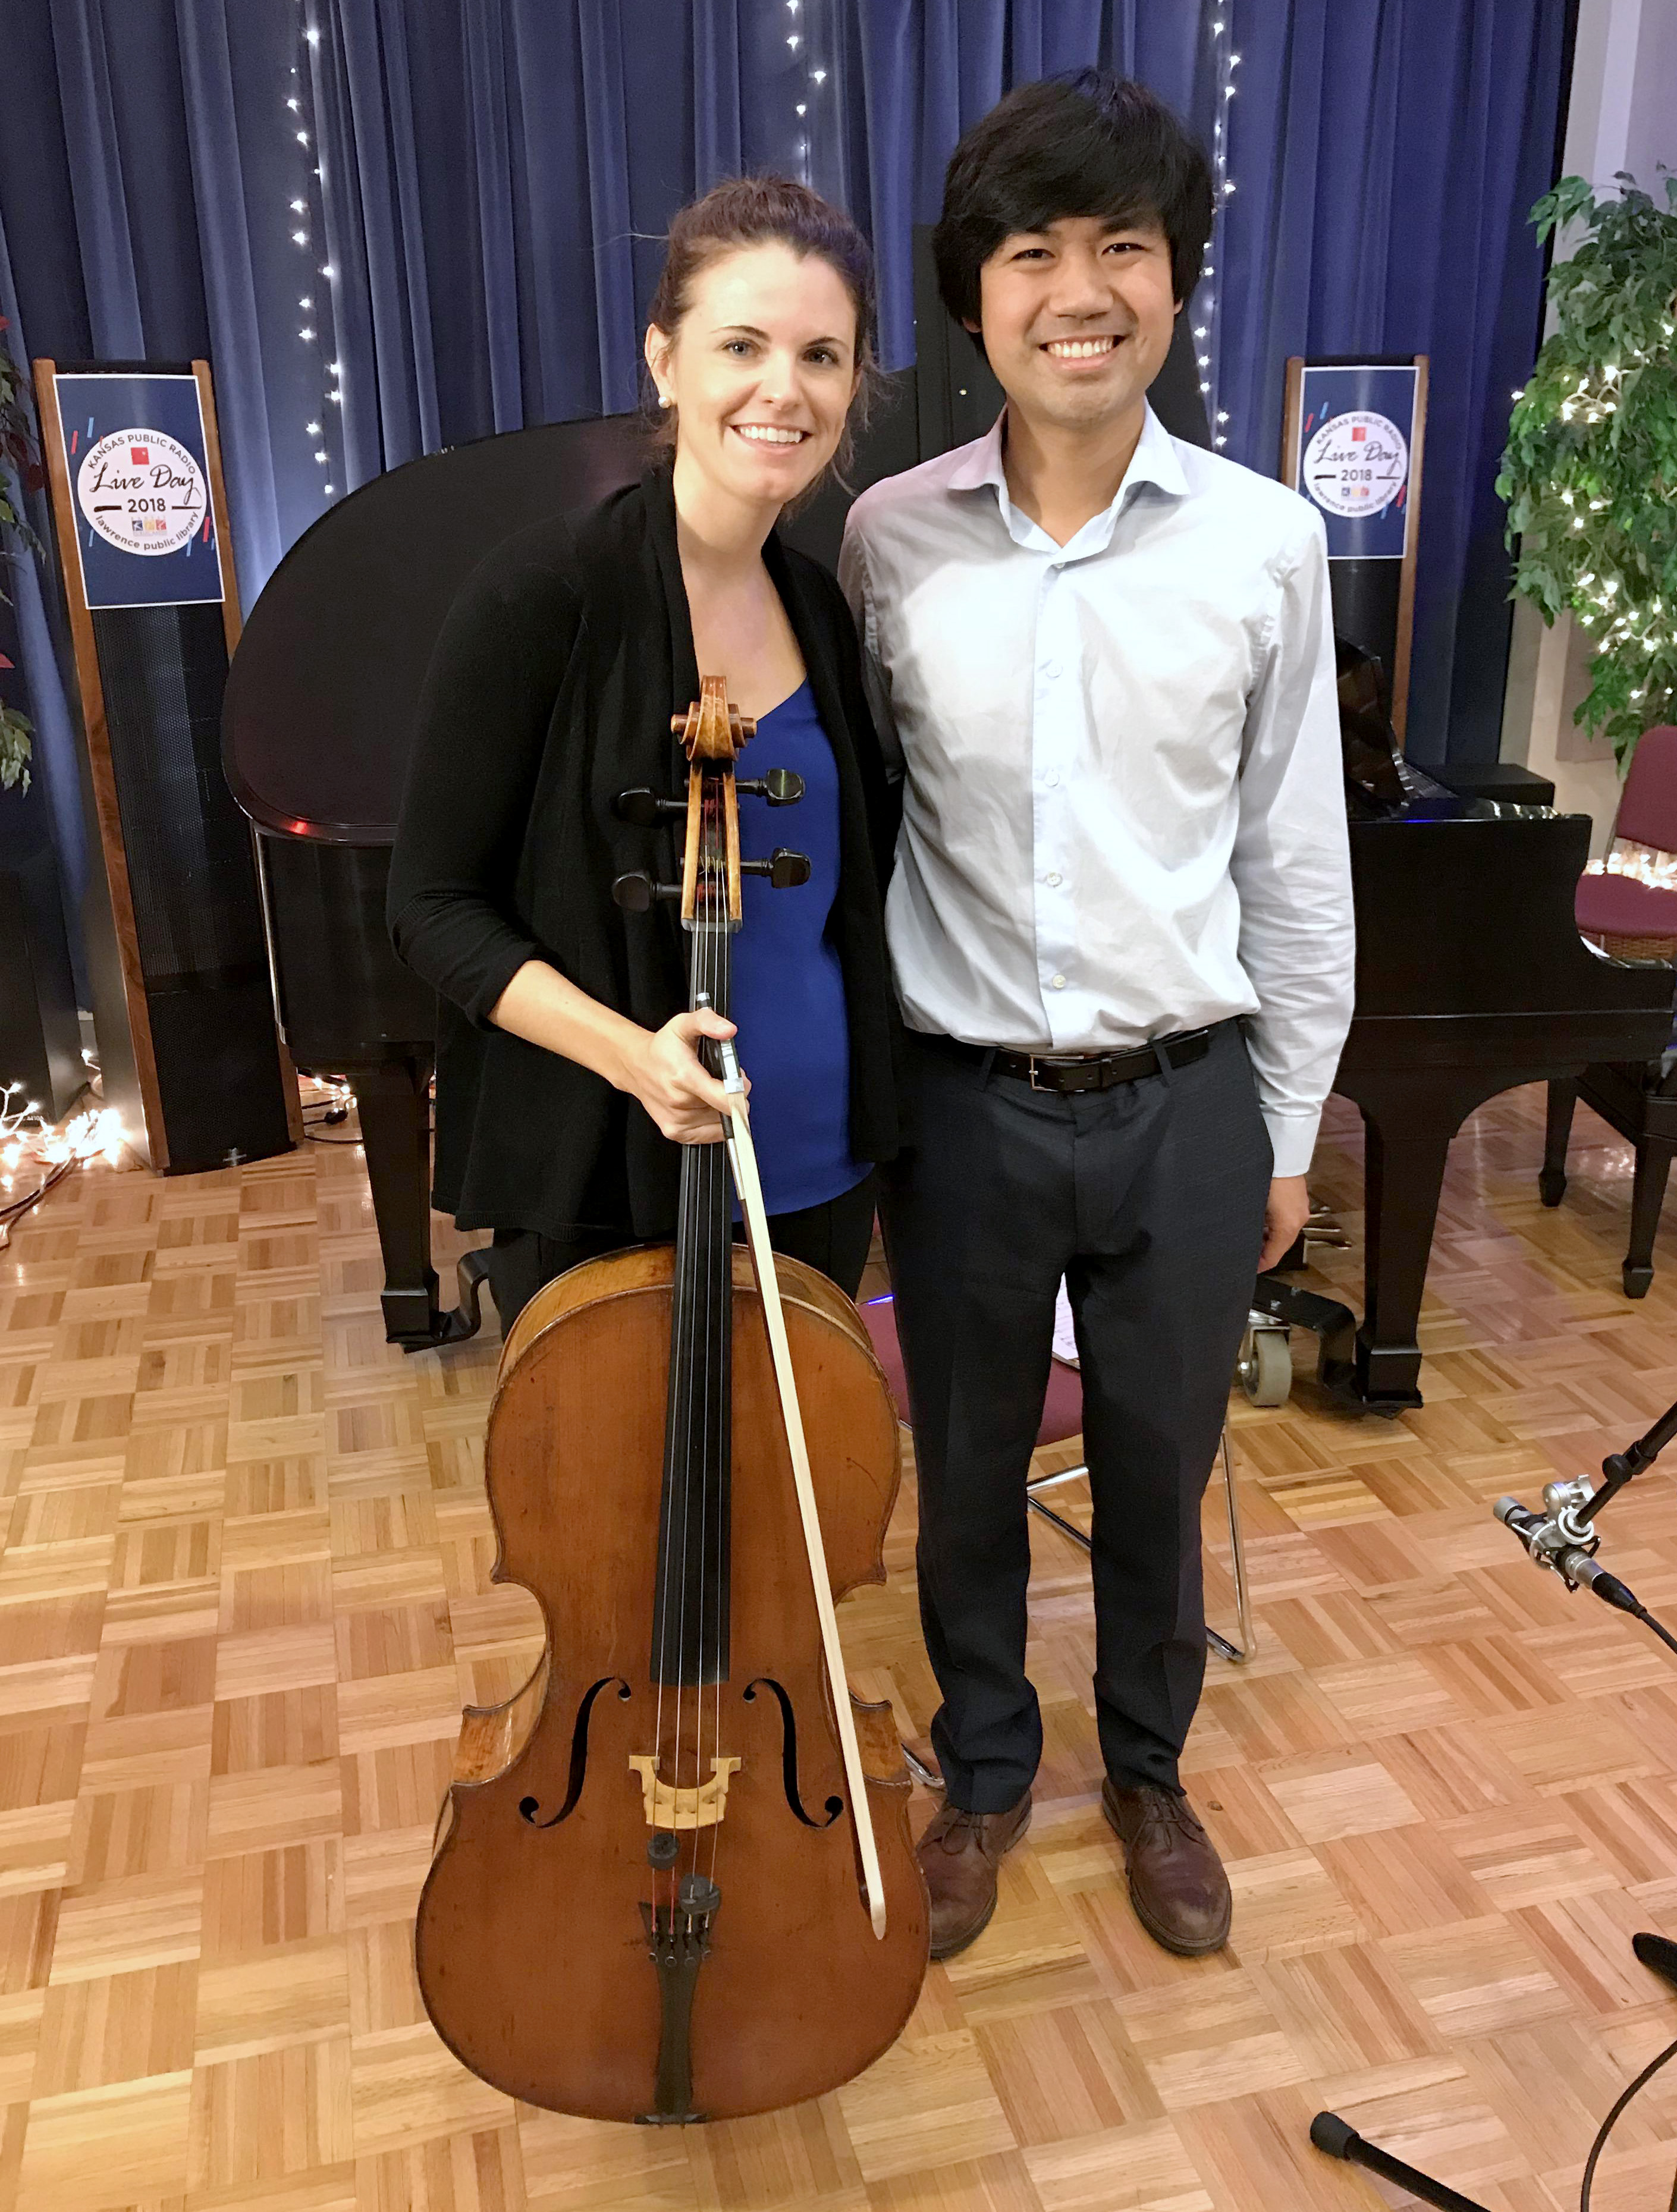 KC Symphony cellist Meredith McCook and pianist Sean Chen teamed up for a program of German classical music.